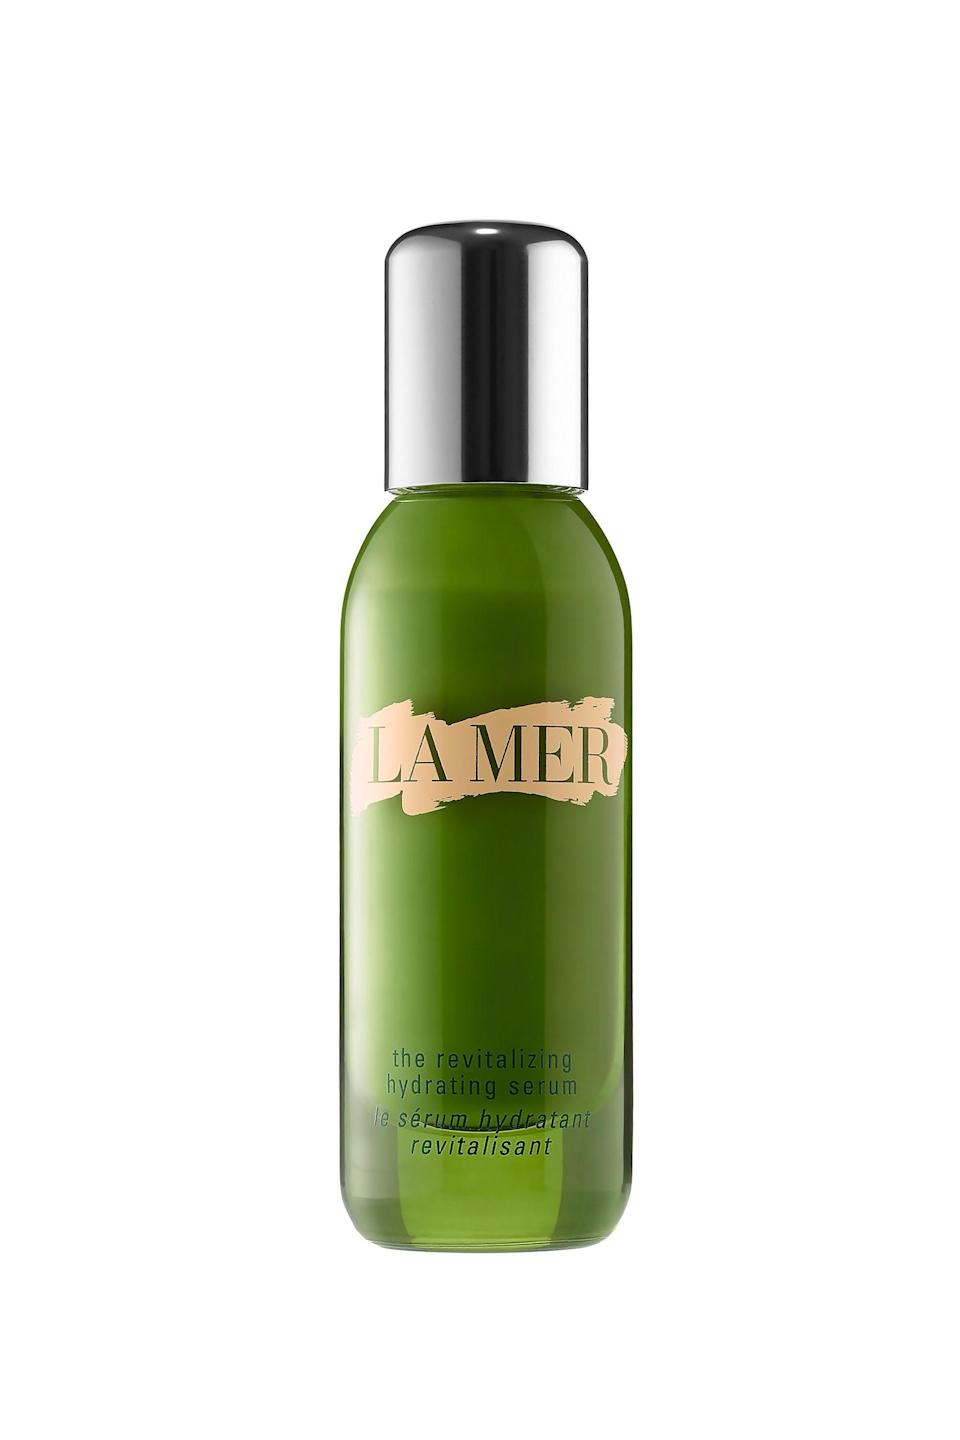 "<p><strong>La Mer</strong></p><p>neimanmarcus.com</p><p><strong>$230.00</strong></p><p><a href=""https://go.redirectingat.com?id=74968X1596630&url=https%3A%2F%2Fwww.neimanmarcus.com%2Fp%2Fprod196390154&sref=https%3A%2F%2Fwww.redbookmag.com%2Fbeauty%2Fg34658814%2Fface-serum%2F"" rel=""nofollow noopener"" target=""_blank"" data-ylk=""slk:Shop Now"" class=""link rapid-noclick-resp"">Shop Now</a></p><p>When tall drinks of water and a constantly running humidifier aren't doing the job for your parched skin, douse it with this seriously hydrating serum. Like La Mer's other offerings, this formula mines the power of the ocean to save your face (in this case drenching it with a nourishing algae blend).</p>"